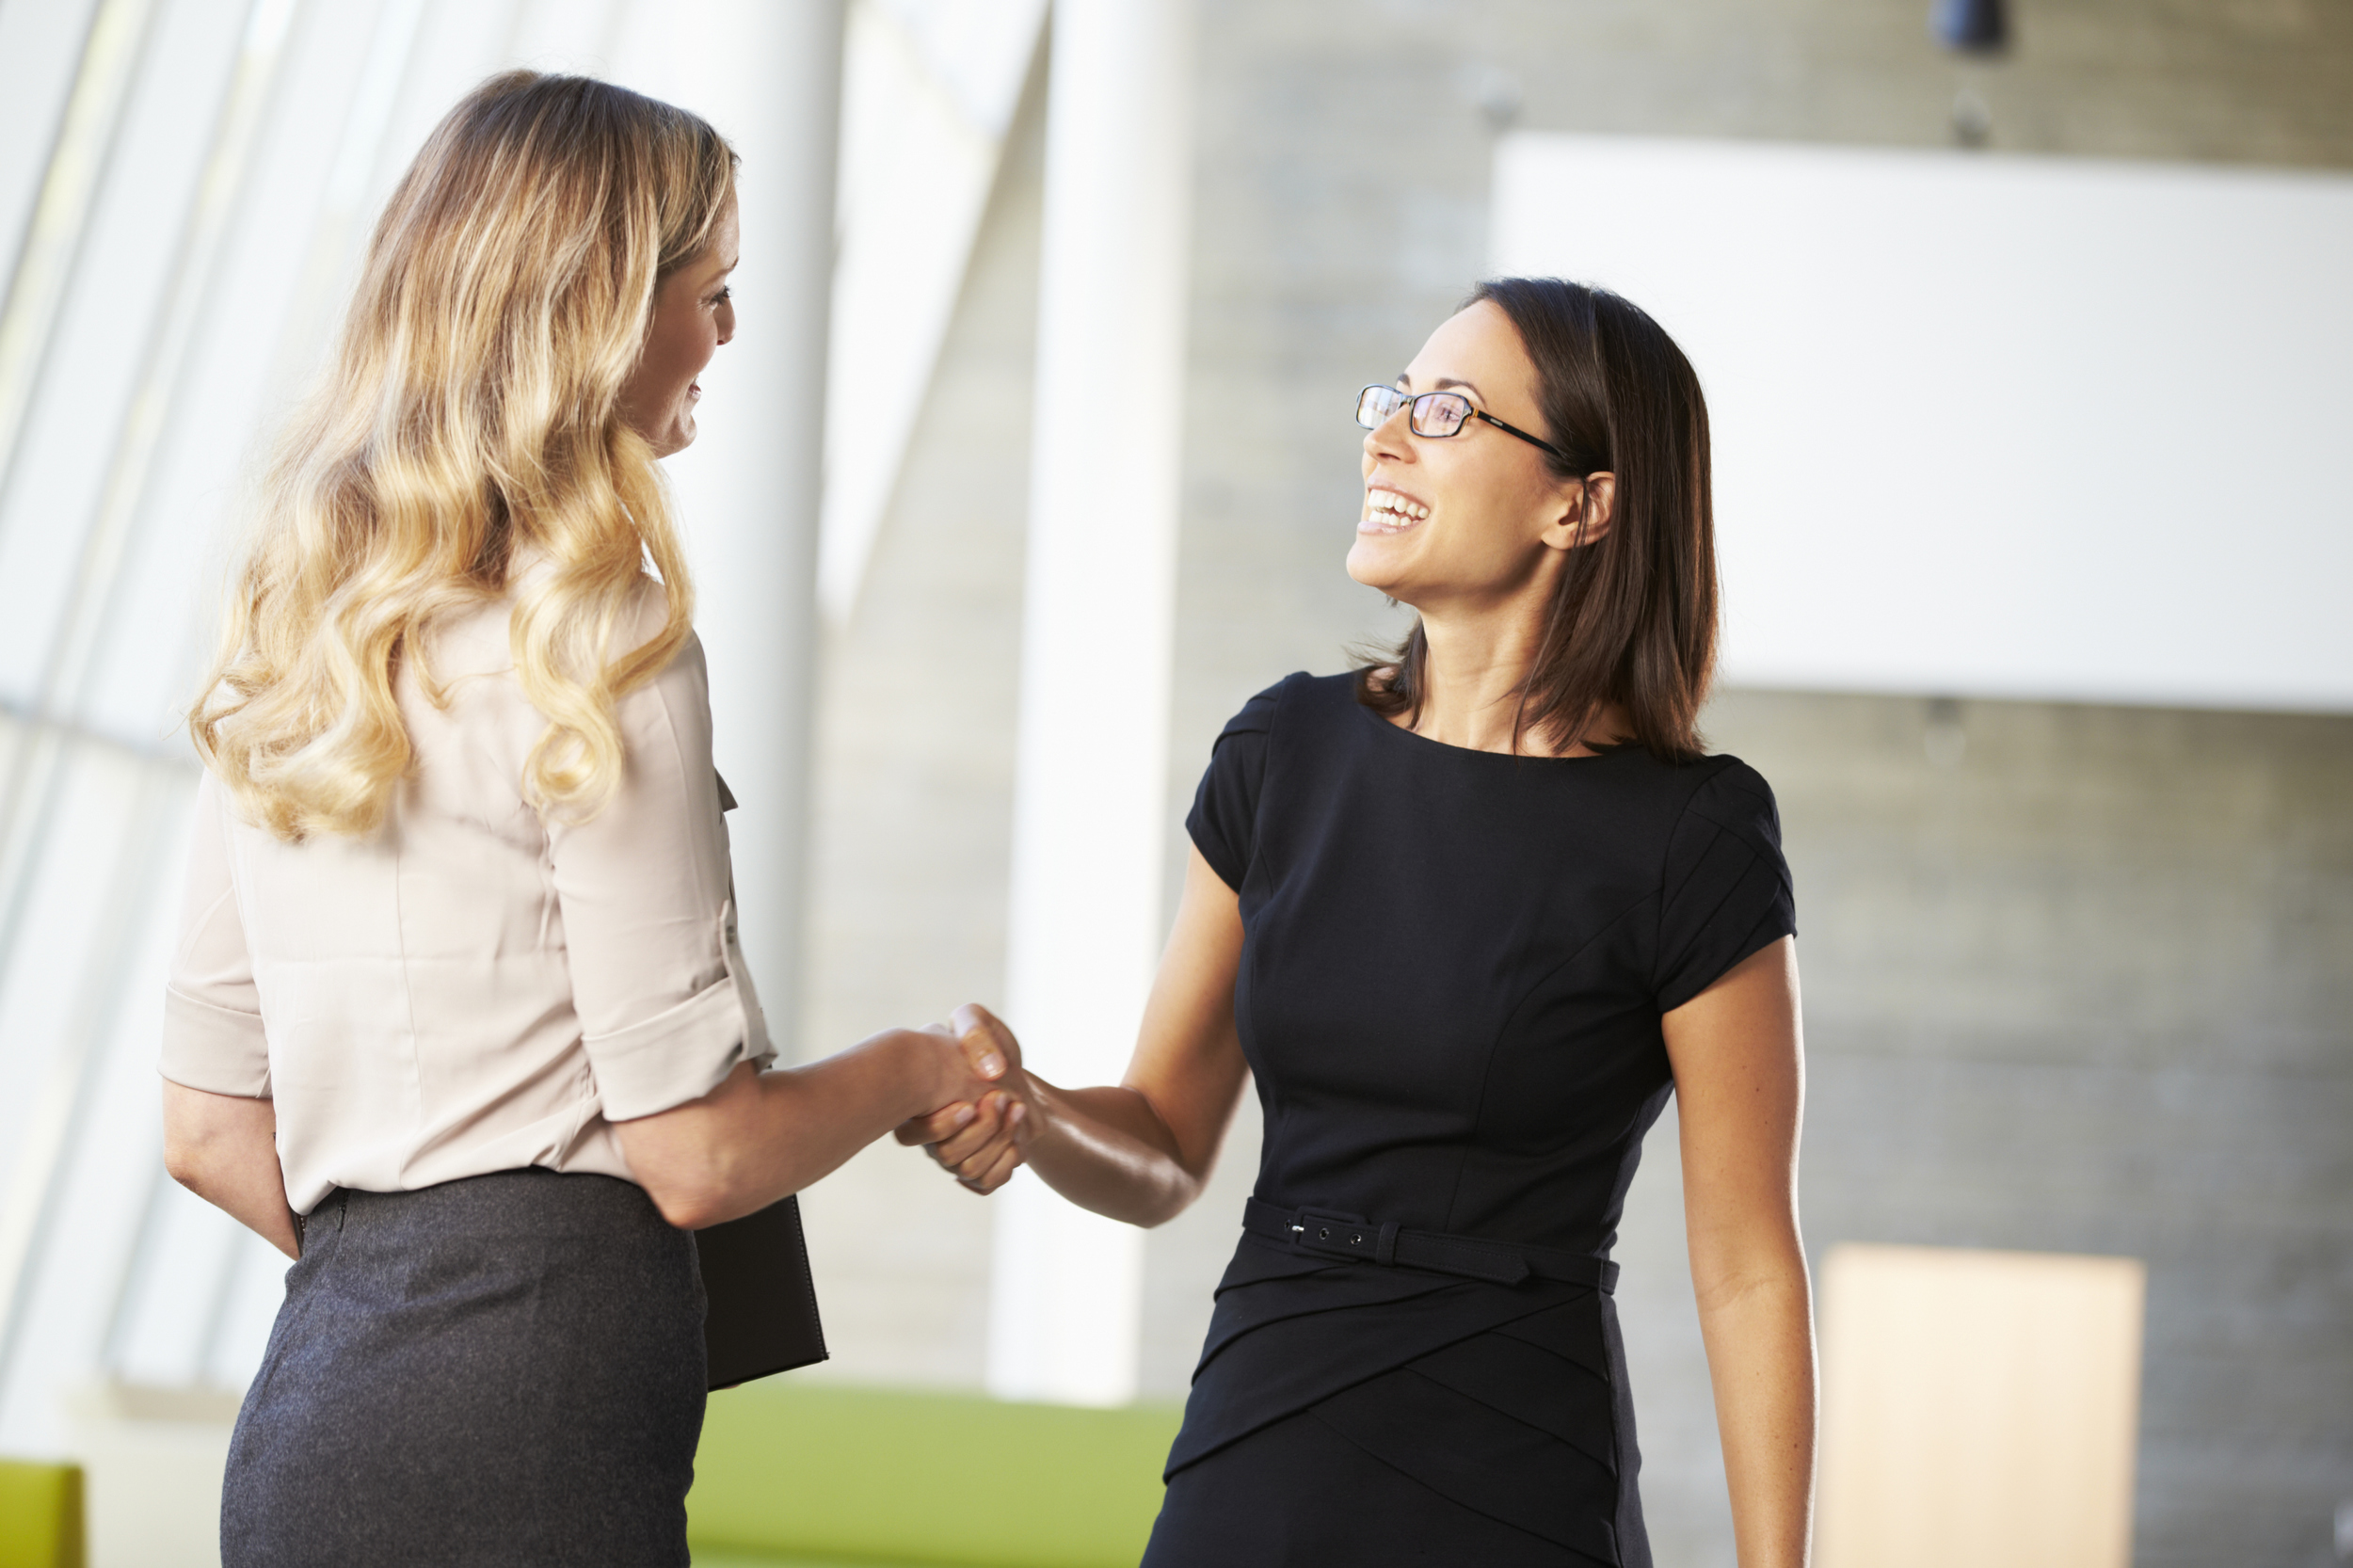 7 body language tricks that are hard to master but will pay off forever